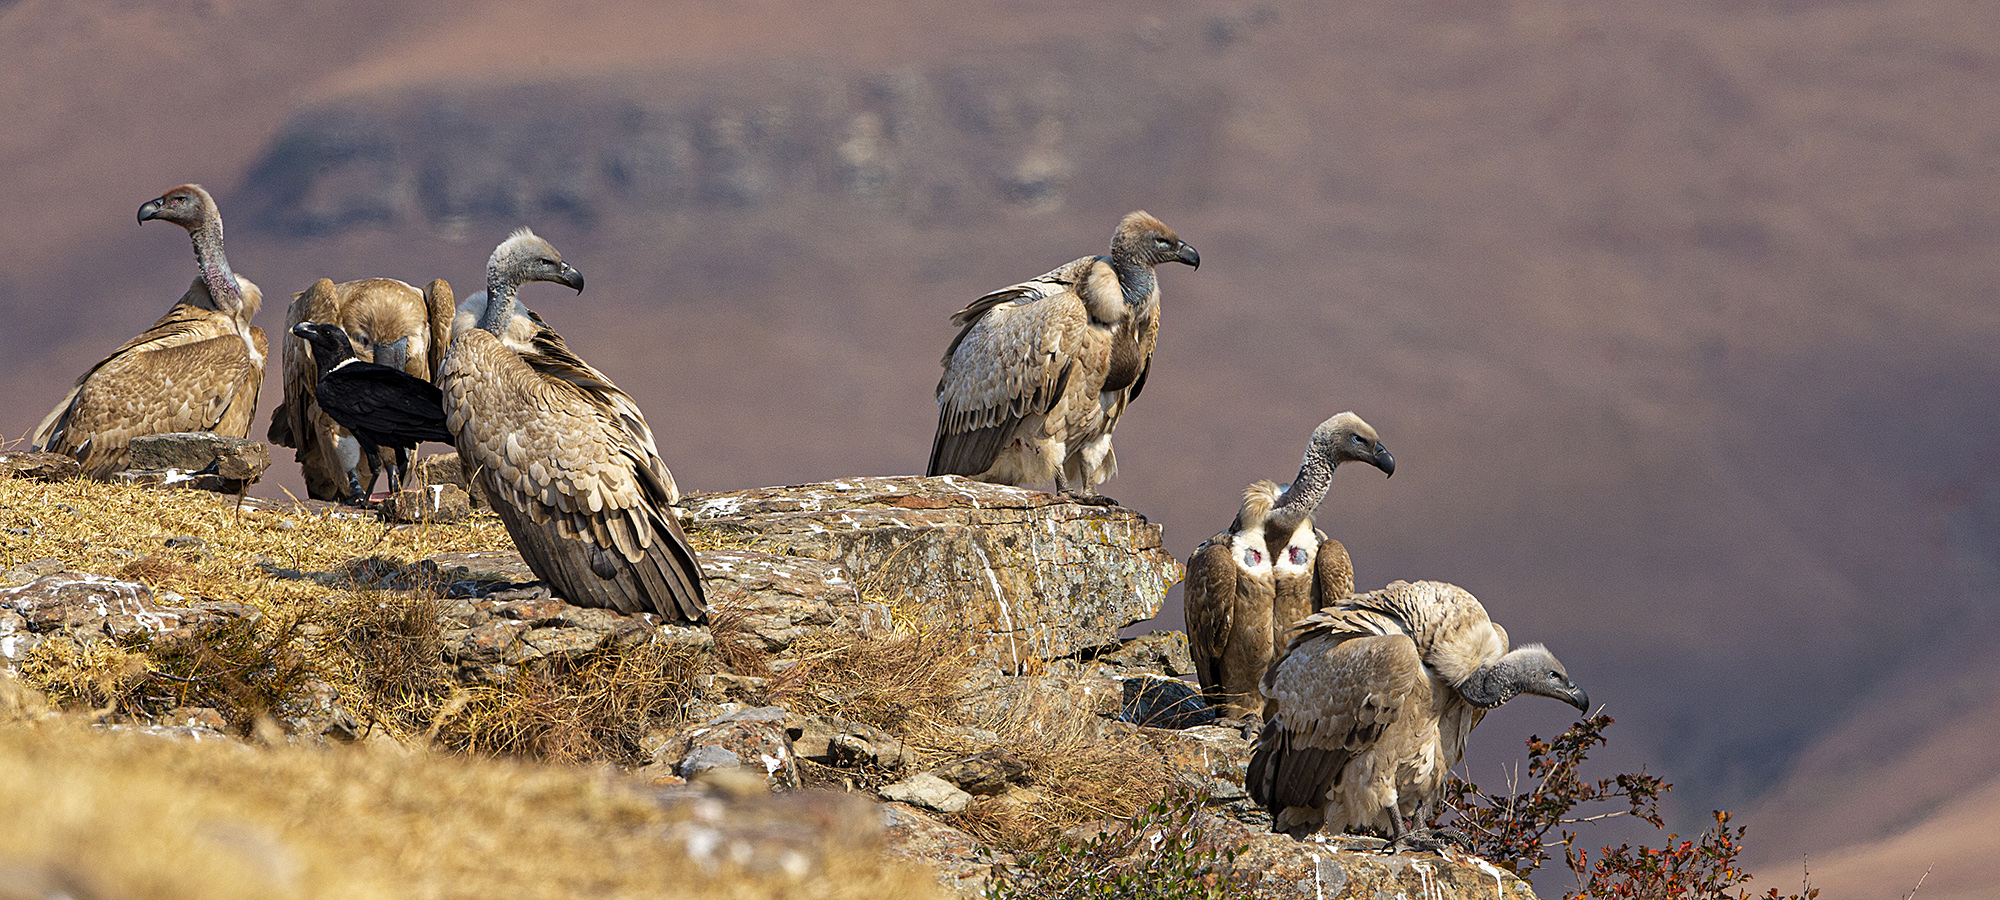 A committee of Cape Vultures. ©Rosamund Macfarlane